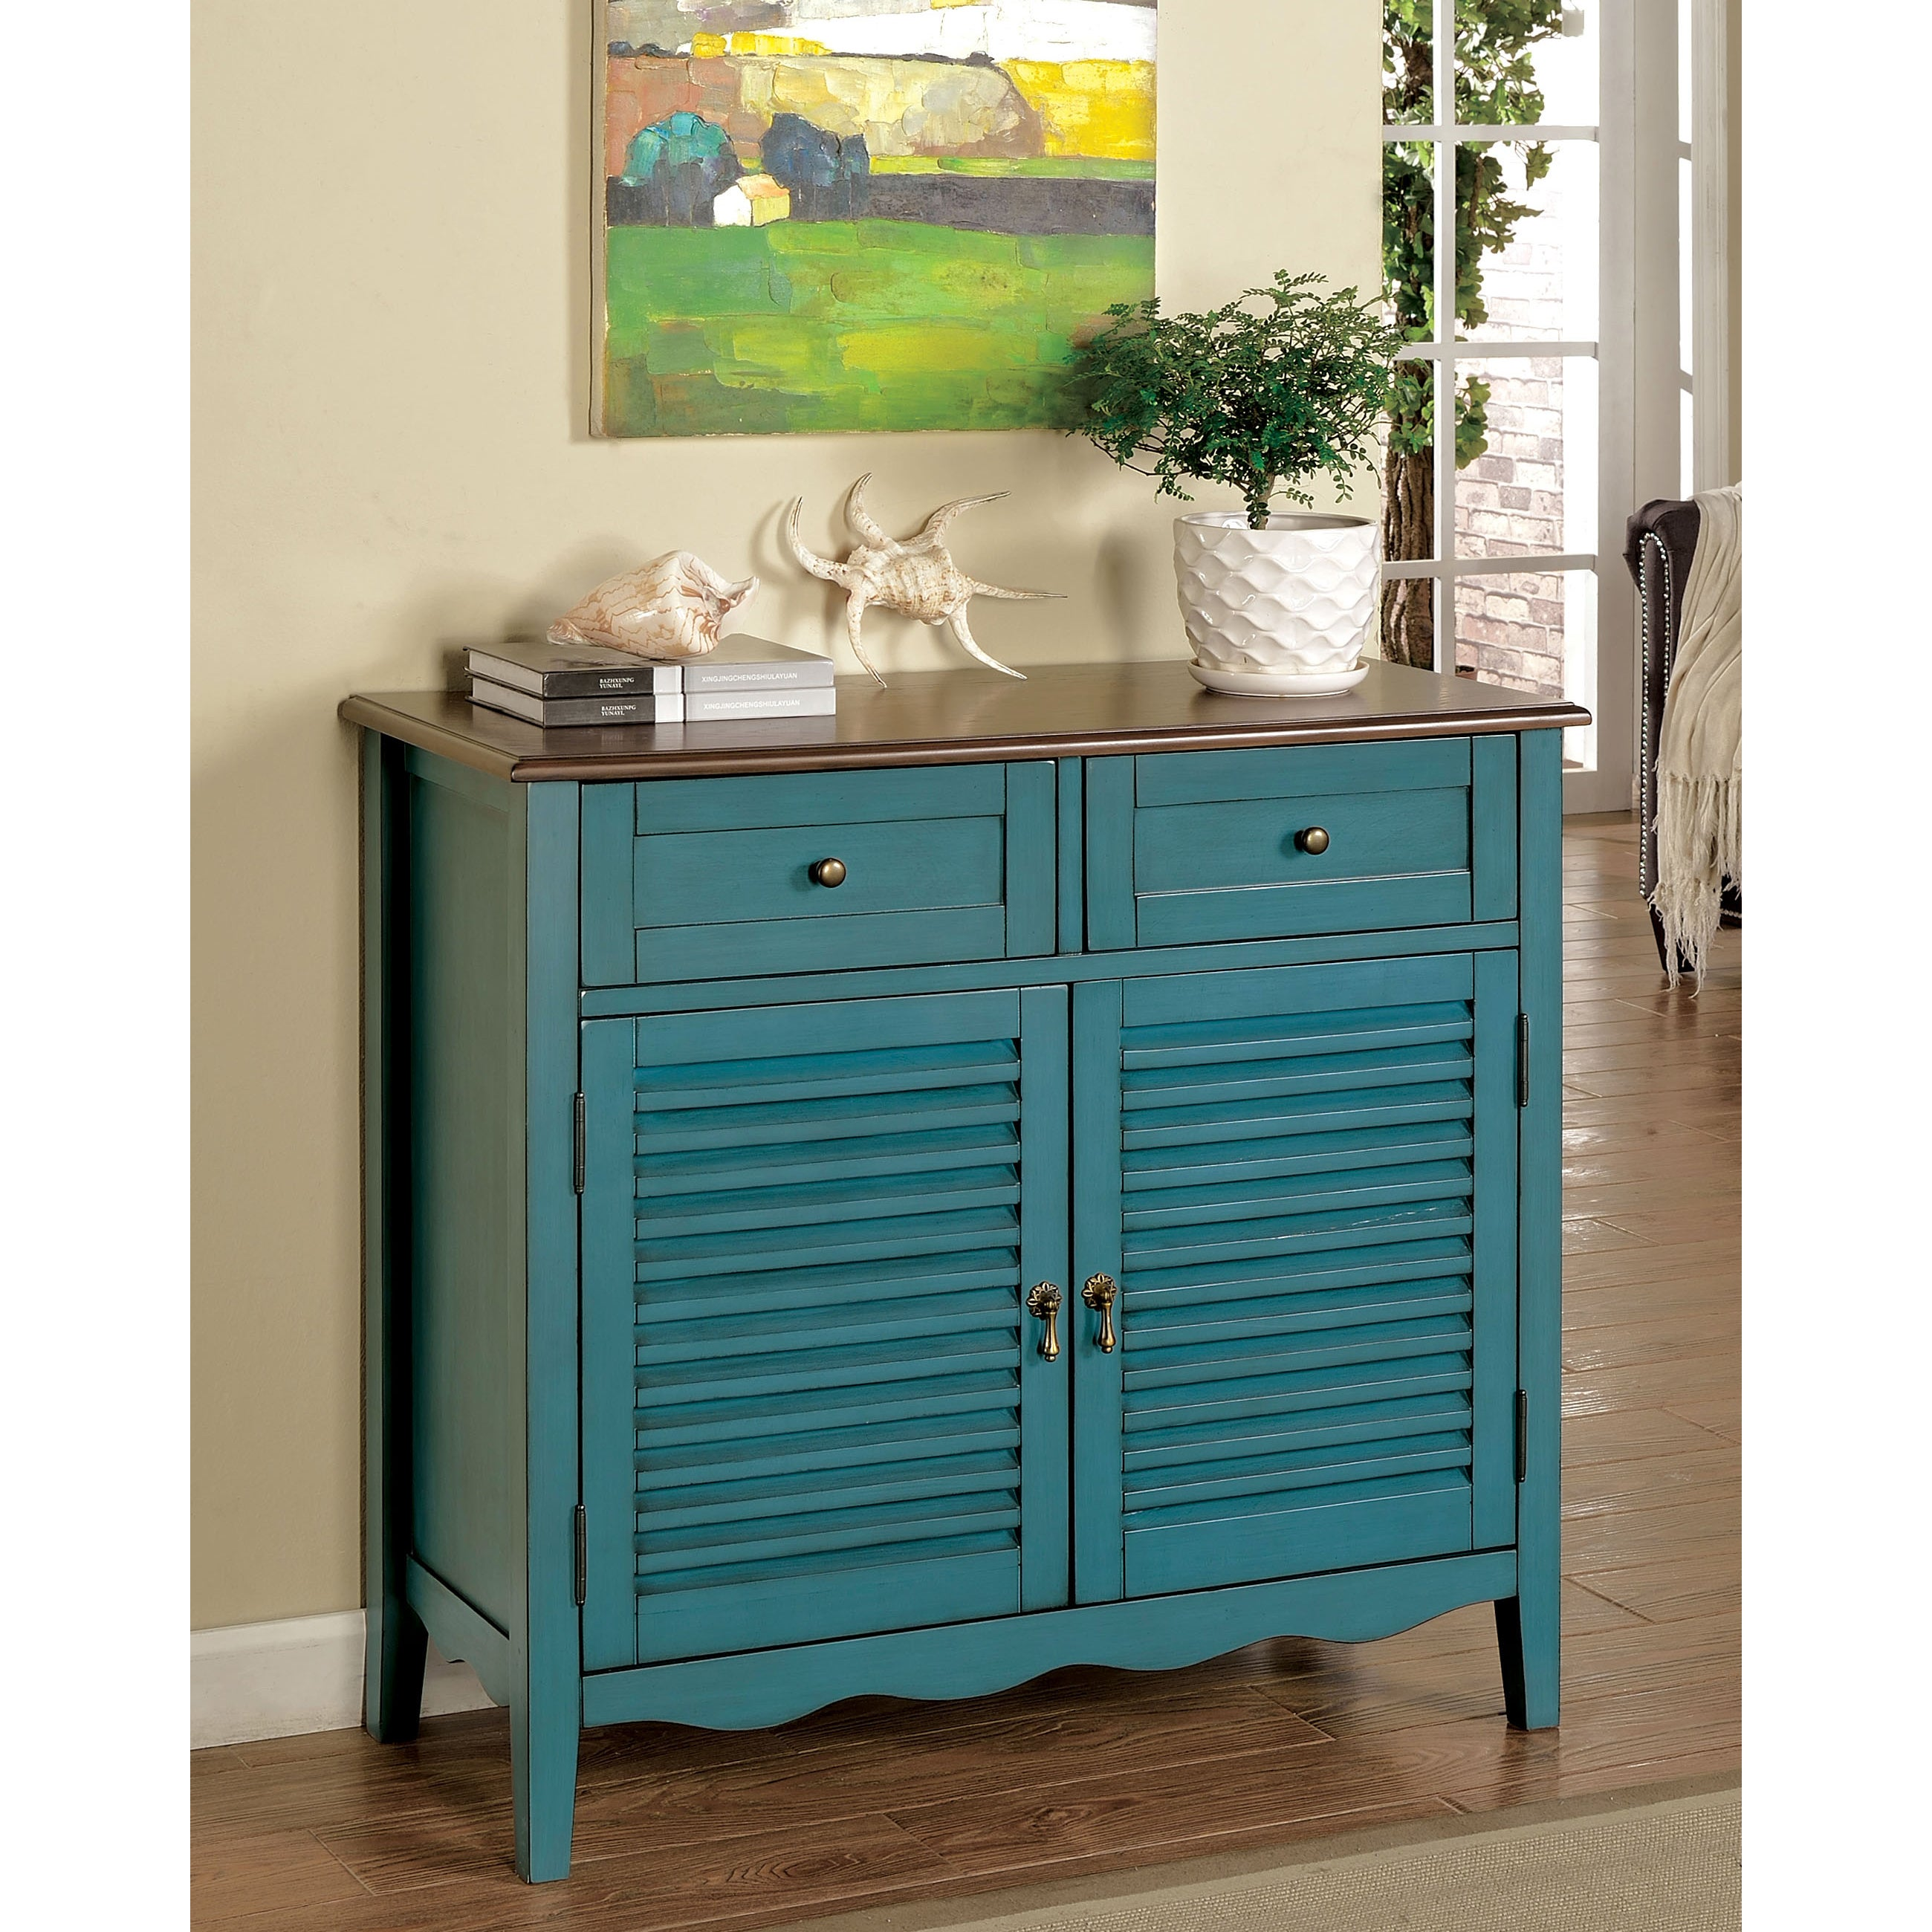 Shop Furniture of America Faite Country Style Hallway Chest - On ...